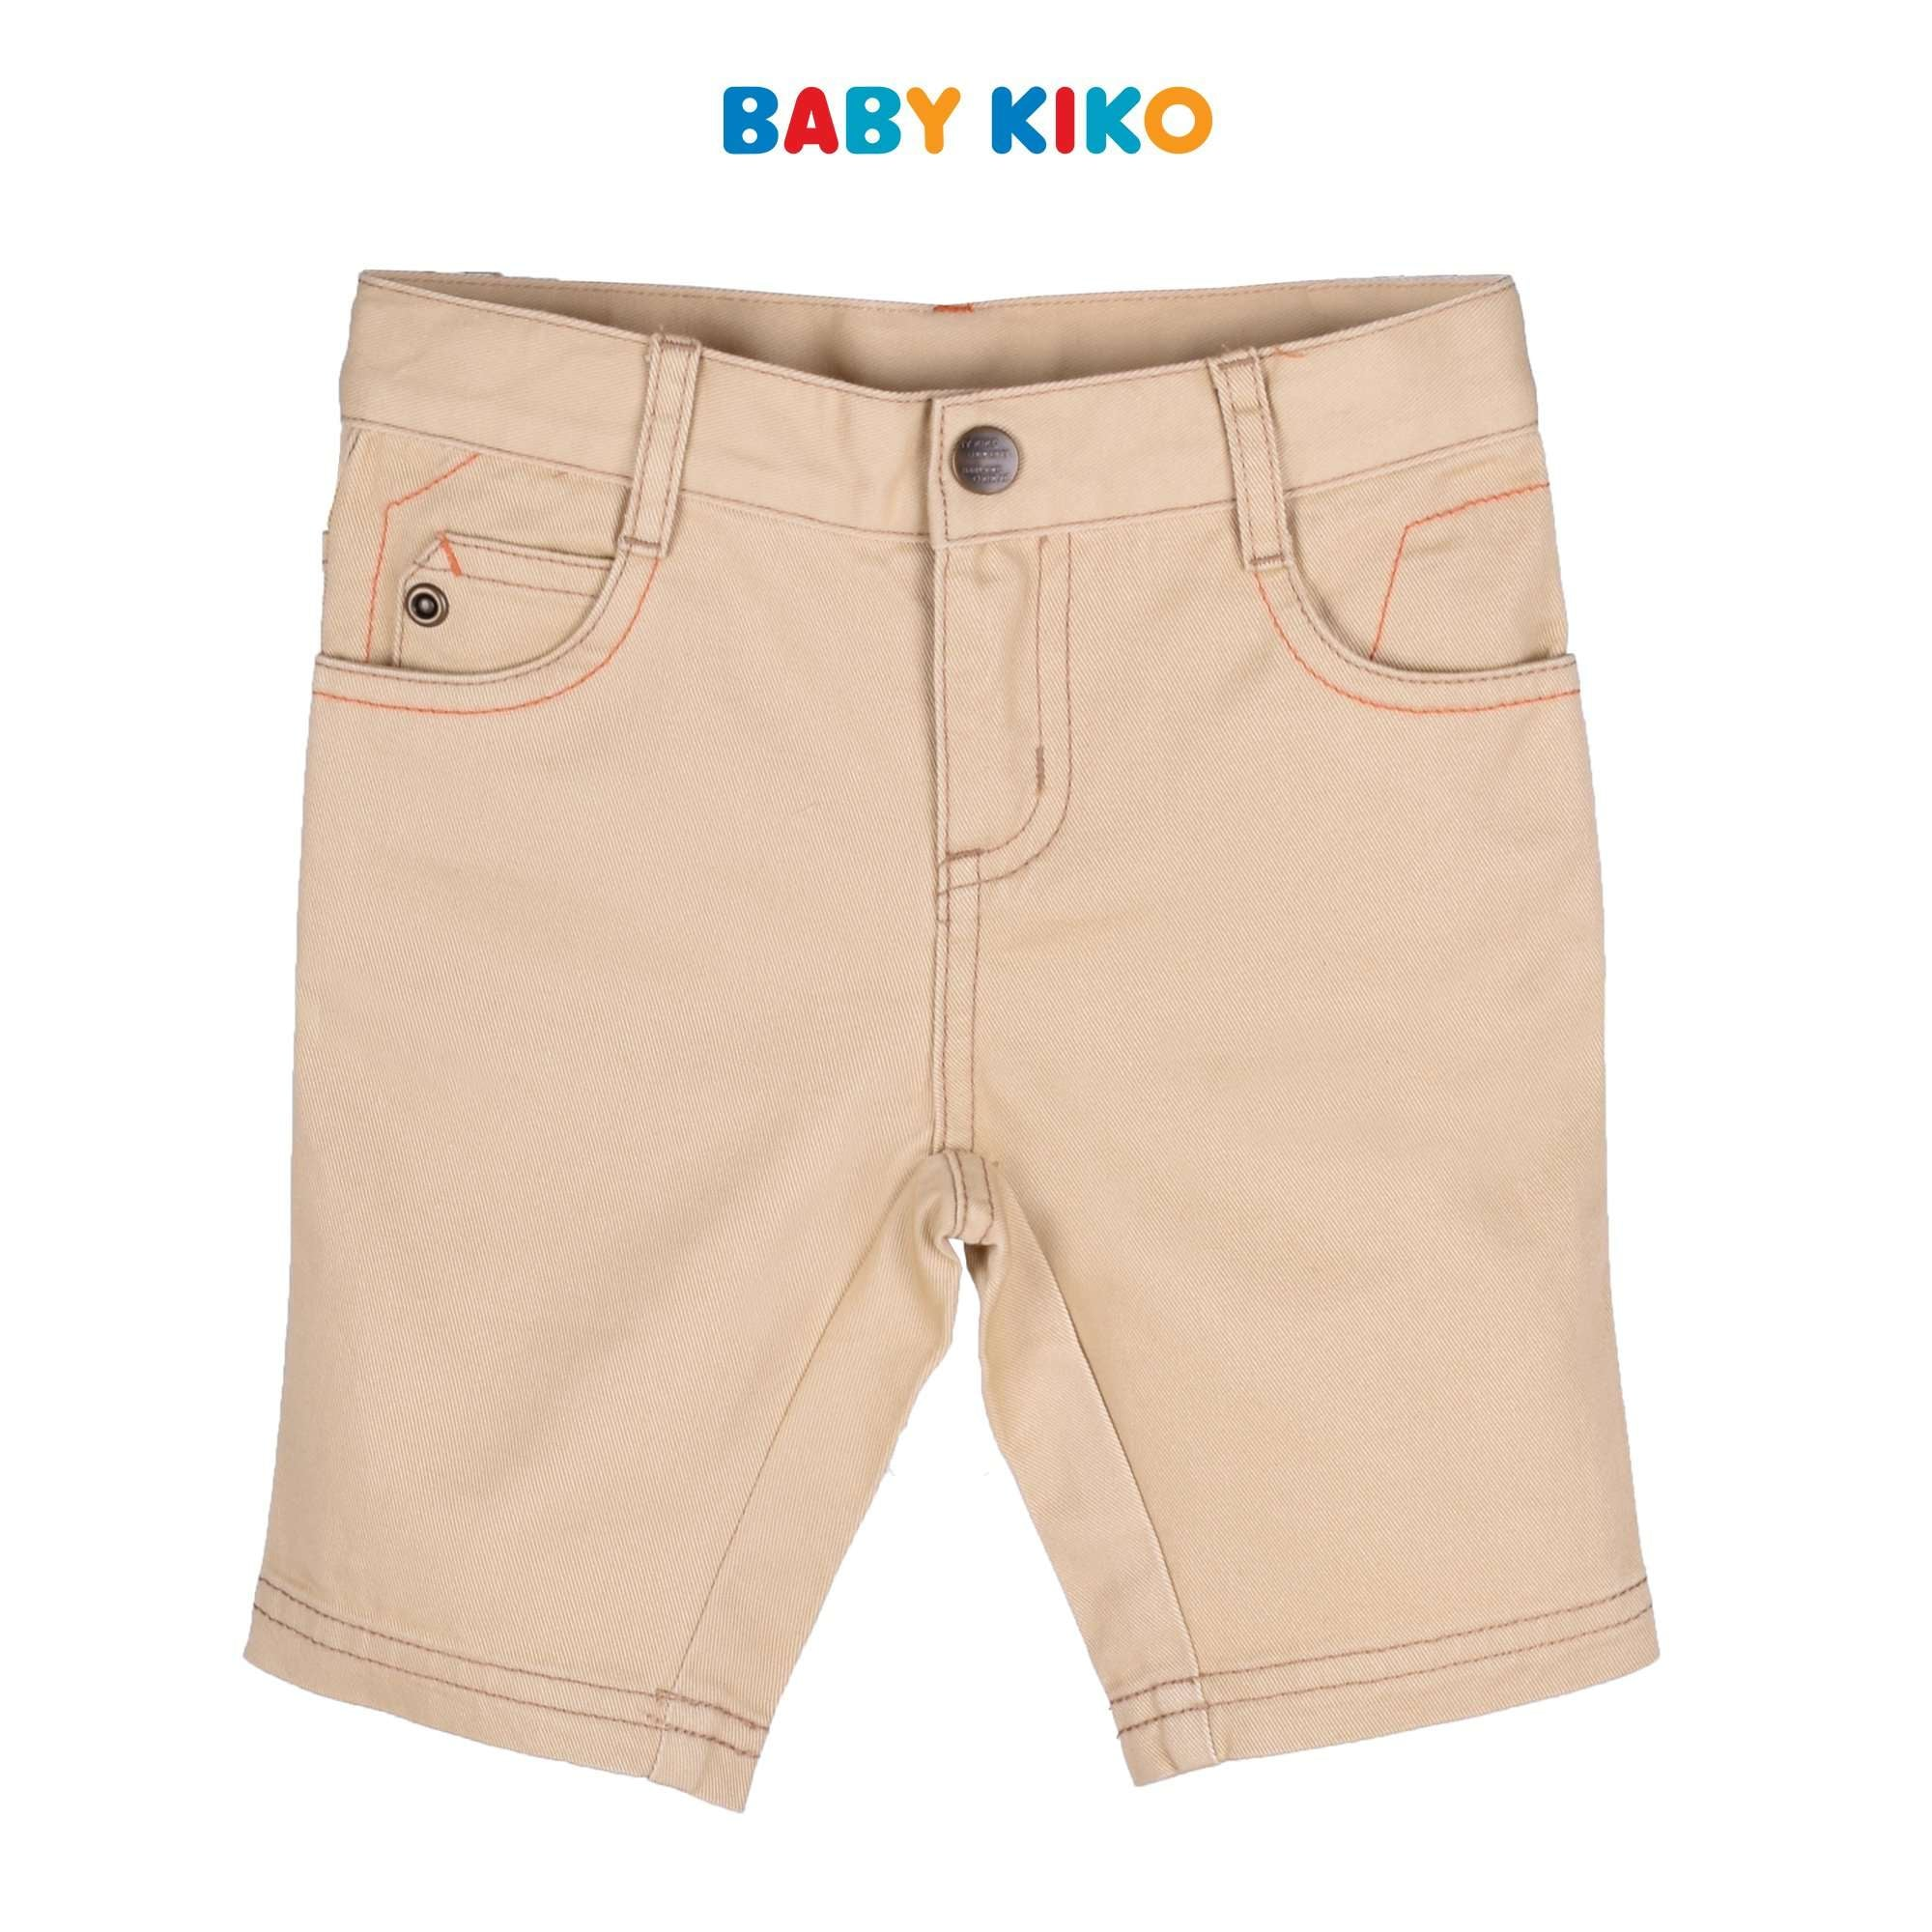 Baby KIKO Toddler Boy Bermuda 335121-241 : Buy Baby KIKO online at CMG.MY